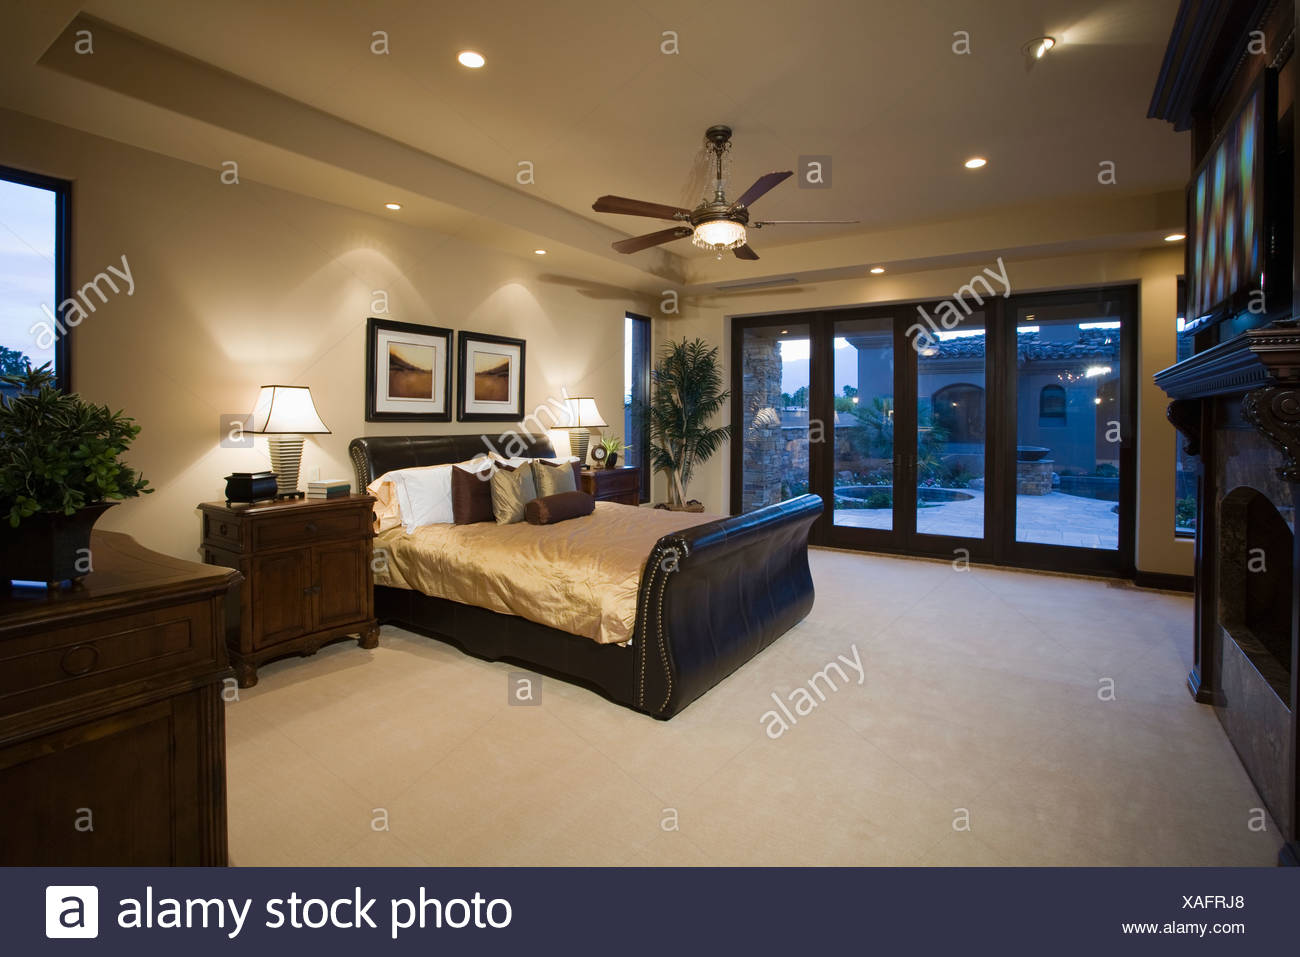 Dark Wood Furniture In Bedroom With Ceiling Fan Stock Photo